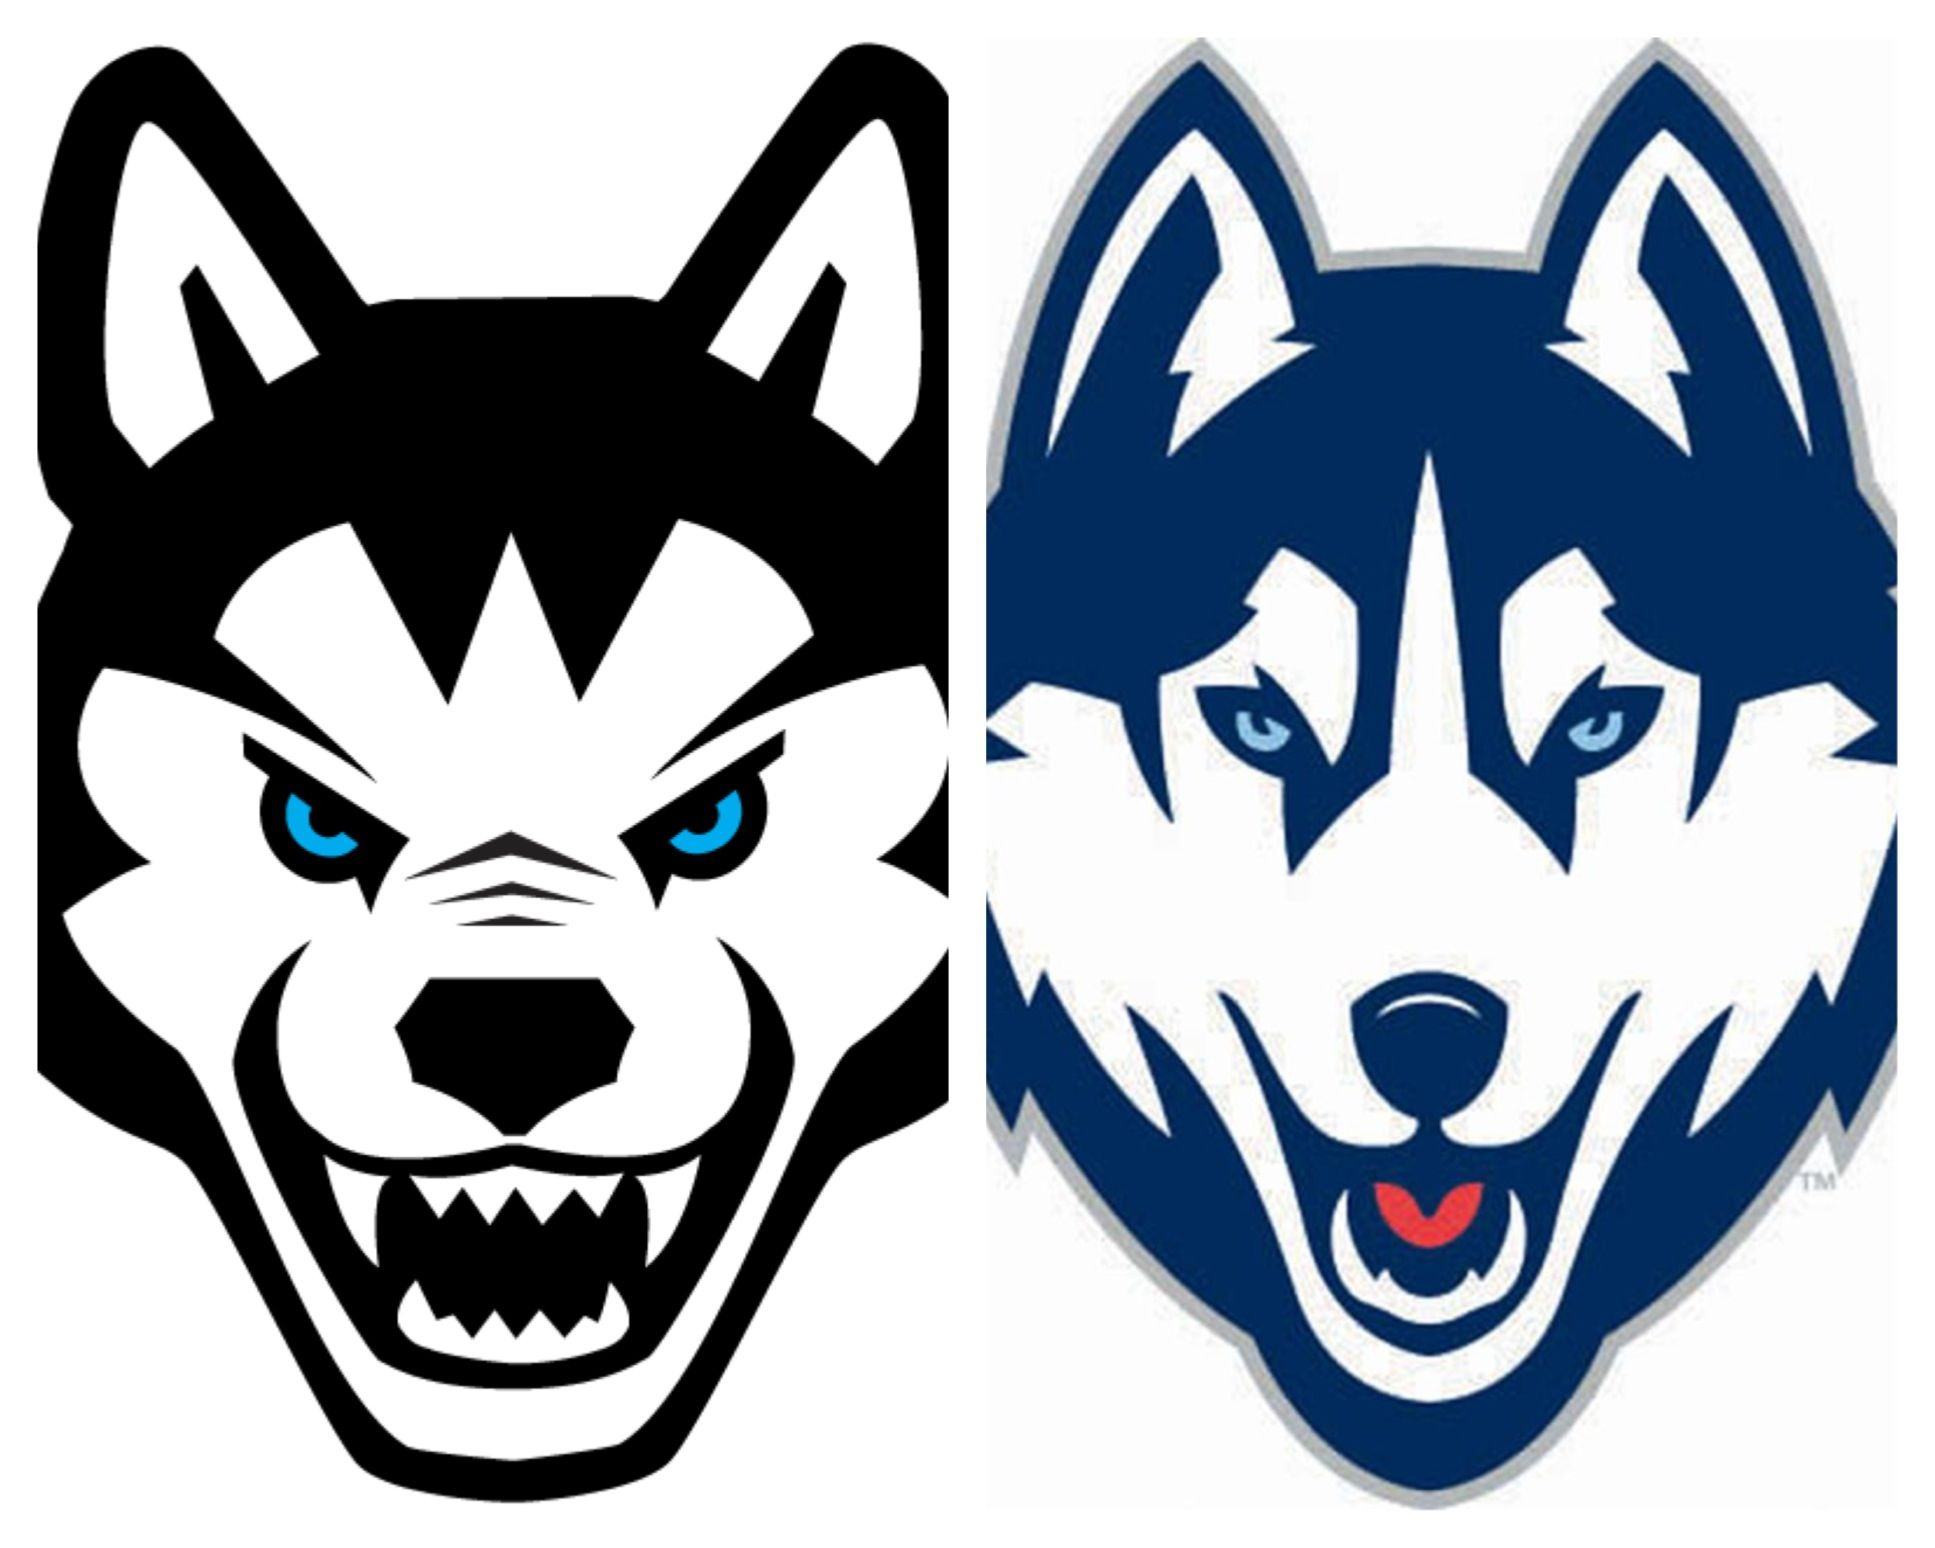 The Northeastern Huskies Logo Is On The Left And How Closely Does